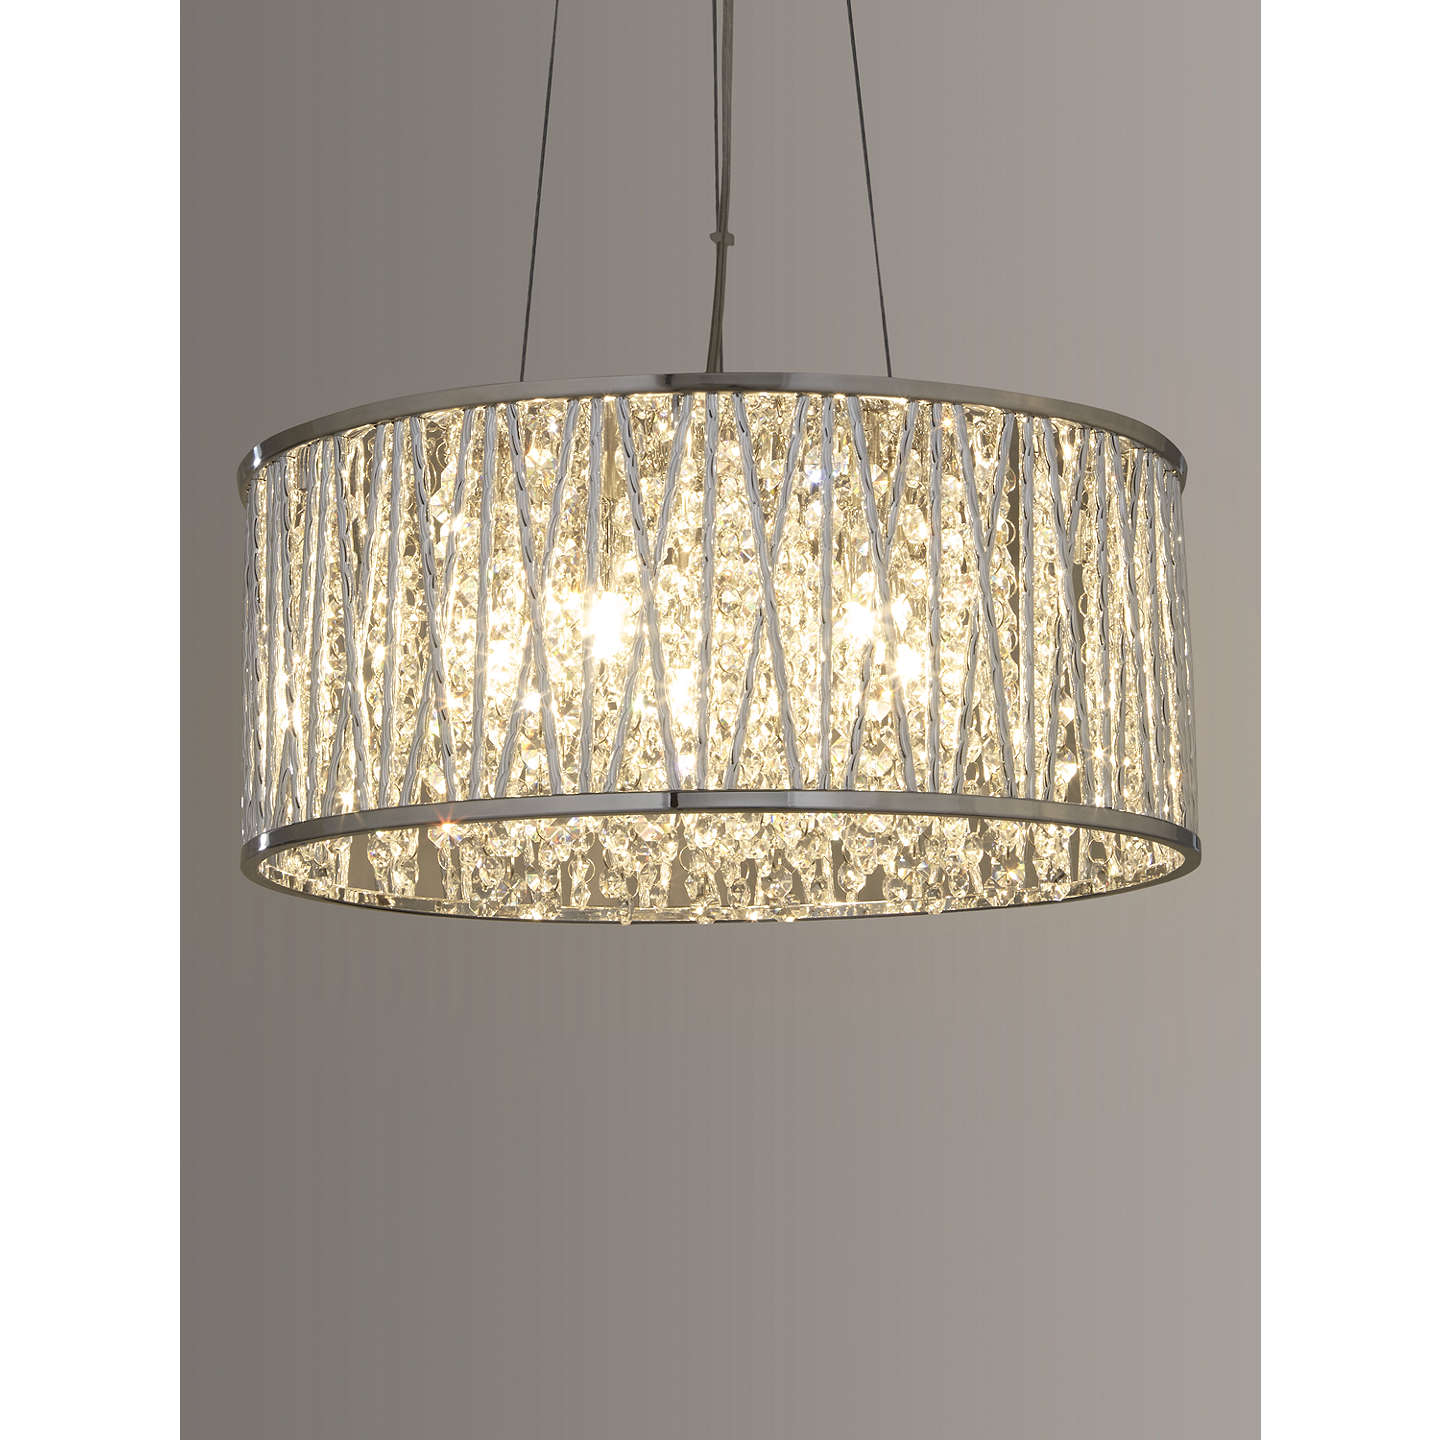 crystal pendant lighting. Crystal Pendant Lighting. Buyjohn Lewis Emilia Drum Light Online At Johnlewis.com Lighting